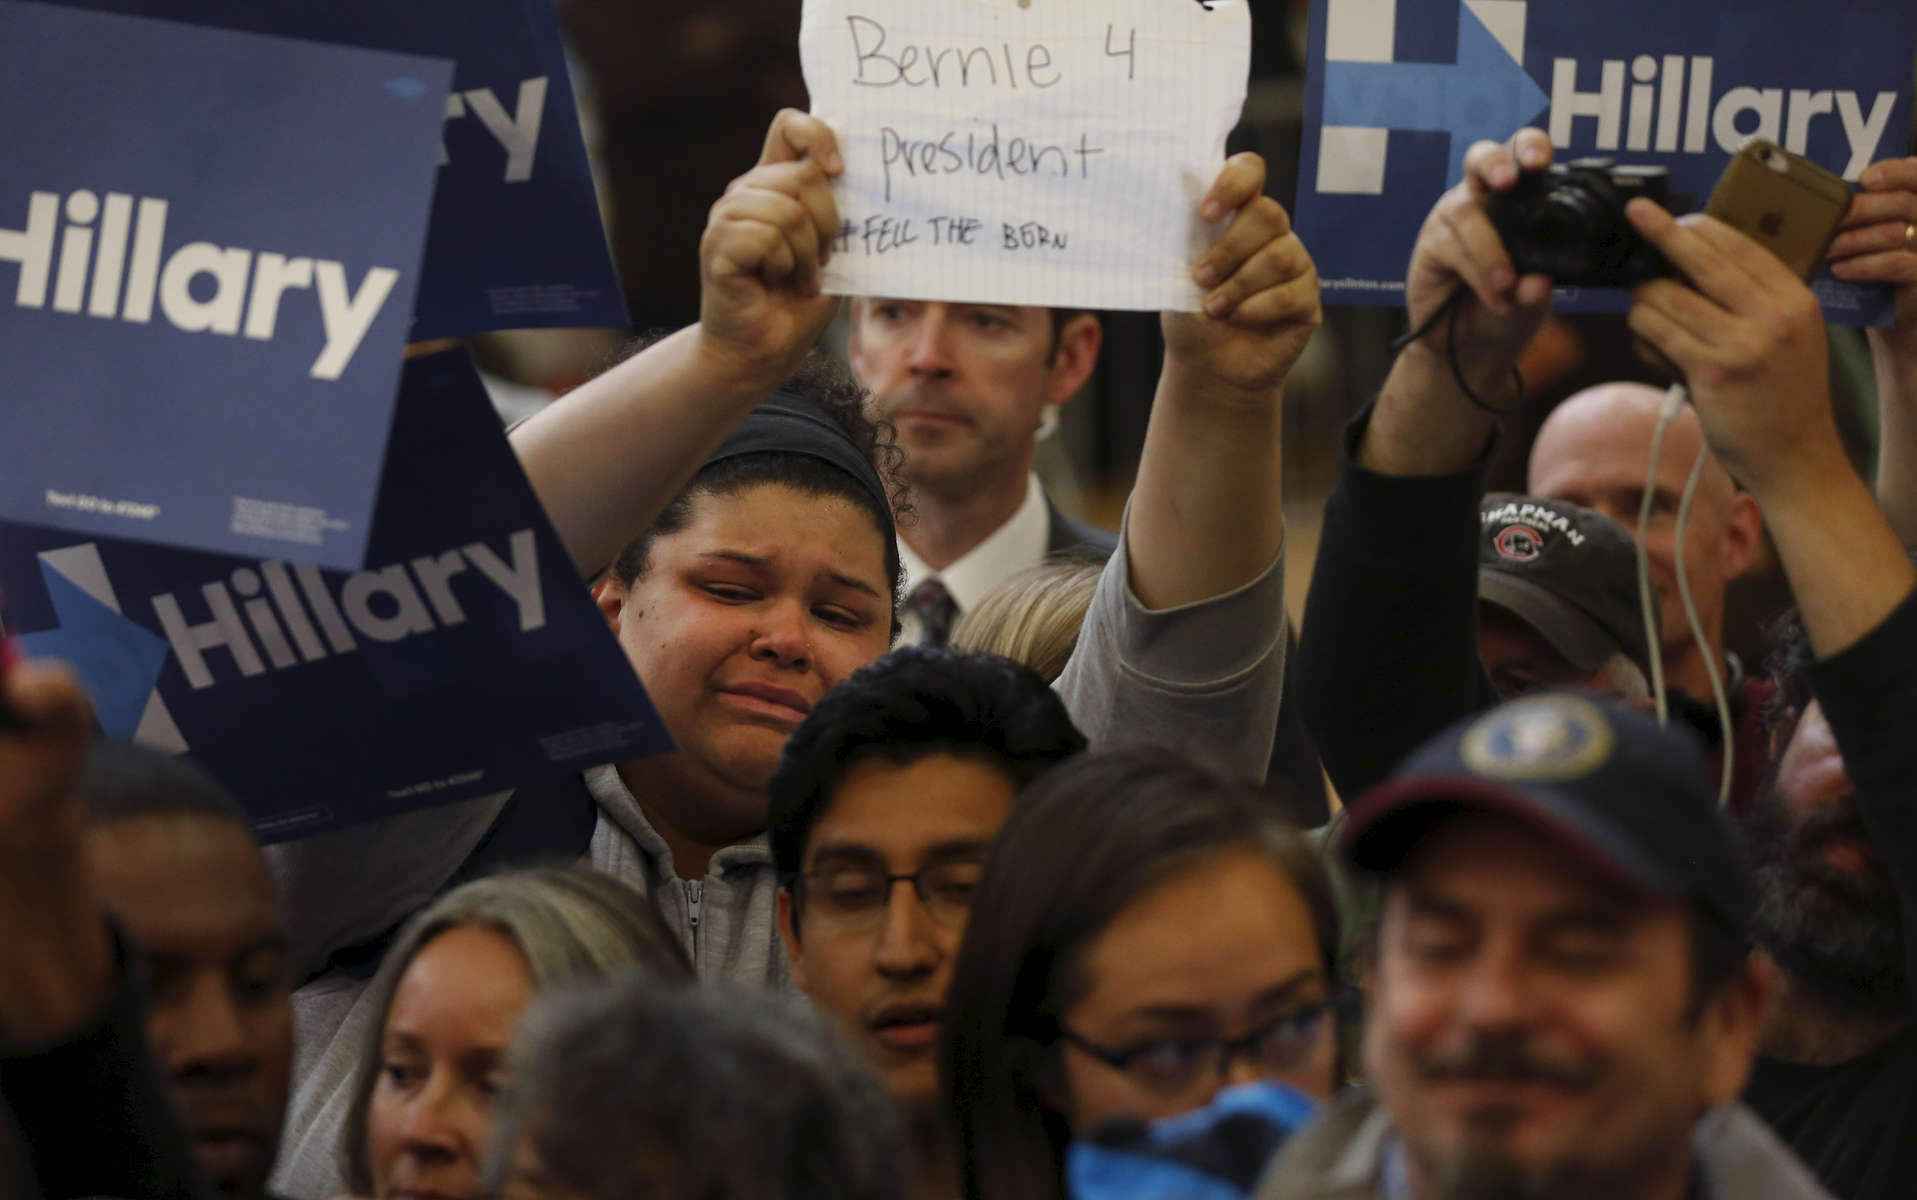 A supporter of presidential candidate Bernie Sanders cries as she holds up a sign while presidential candidate Hillary Clinton greets supporters at a campaign rally at La Escuelita Elementary School May 6, 2016 in Oakland, Calif.